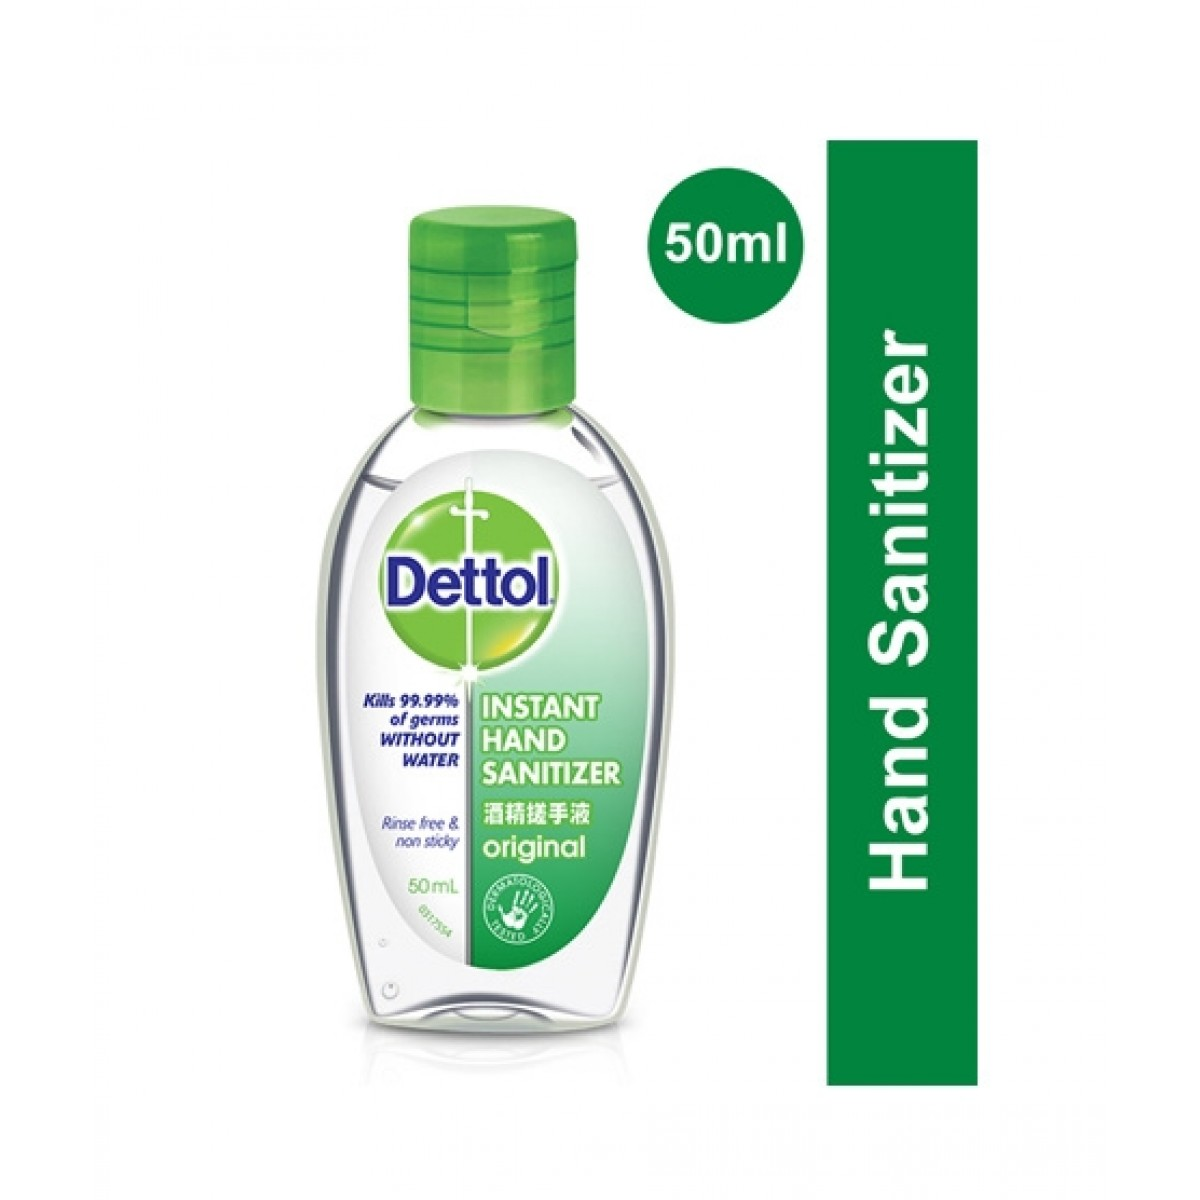 Dettol Instant Hand Sanitizer 50ml Price In Pakistan Buy Dettol